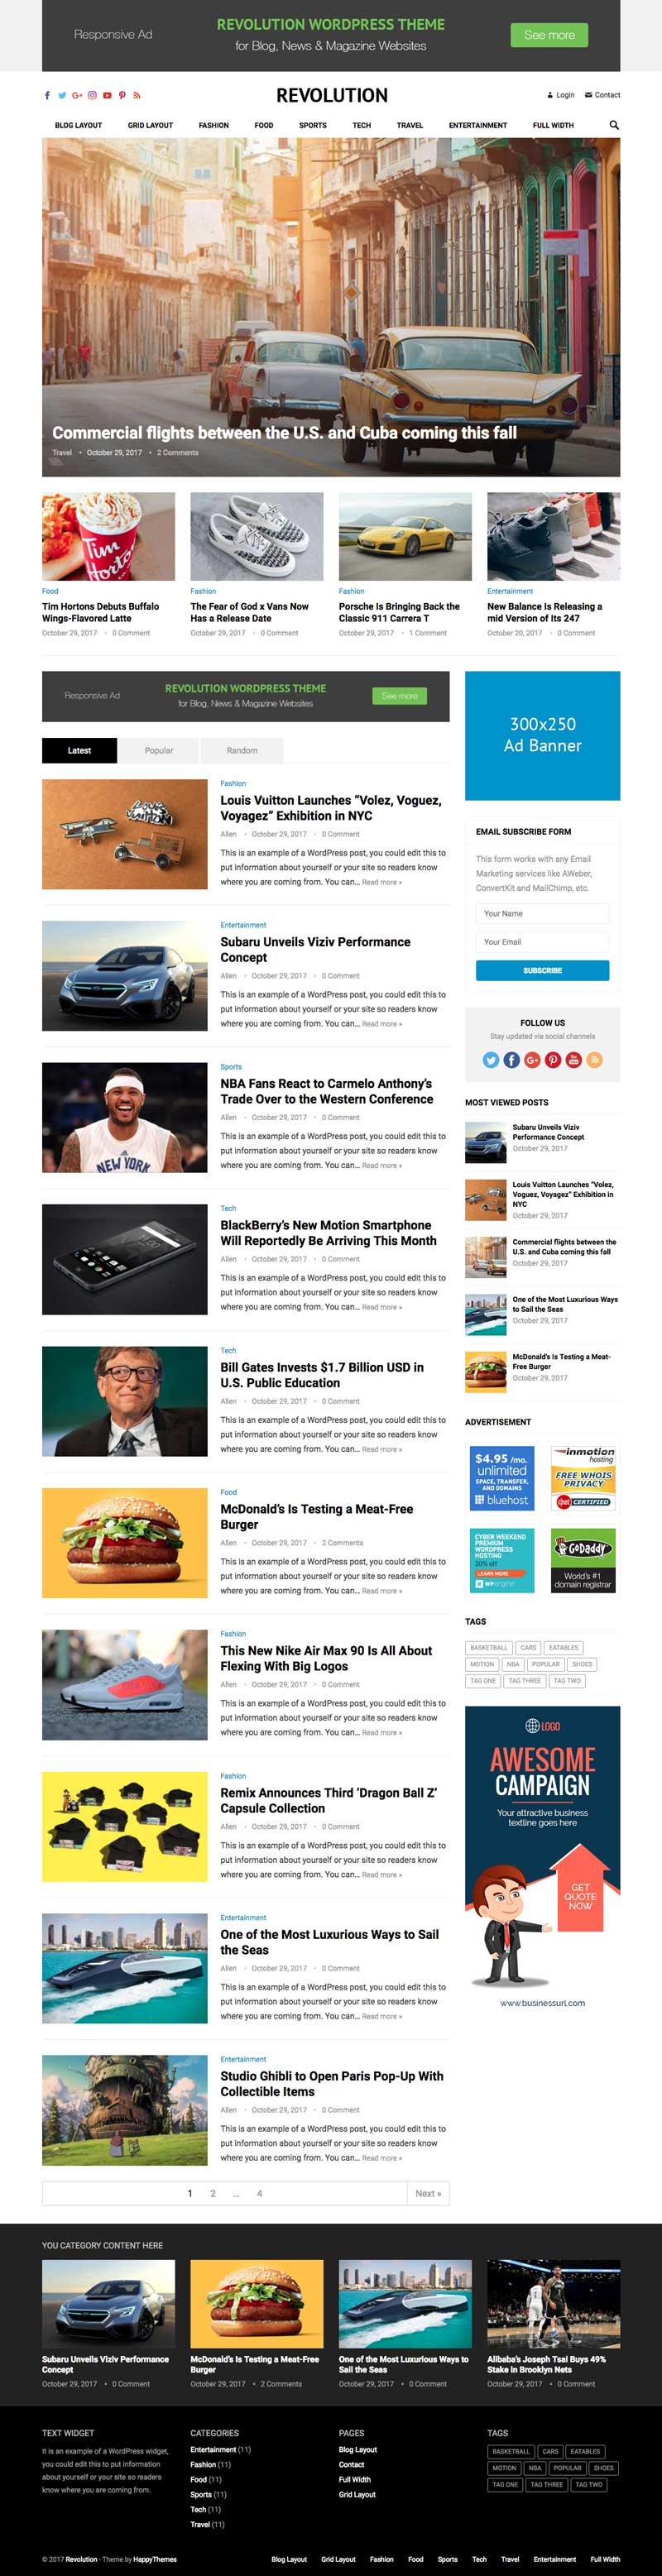 Revolution WordPress Theme for Blog, News & Magazine